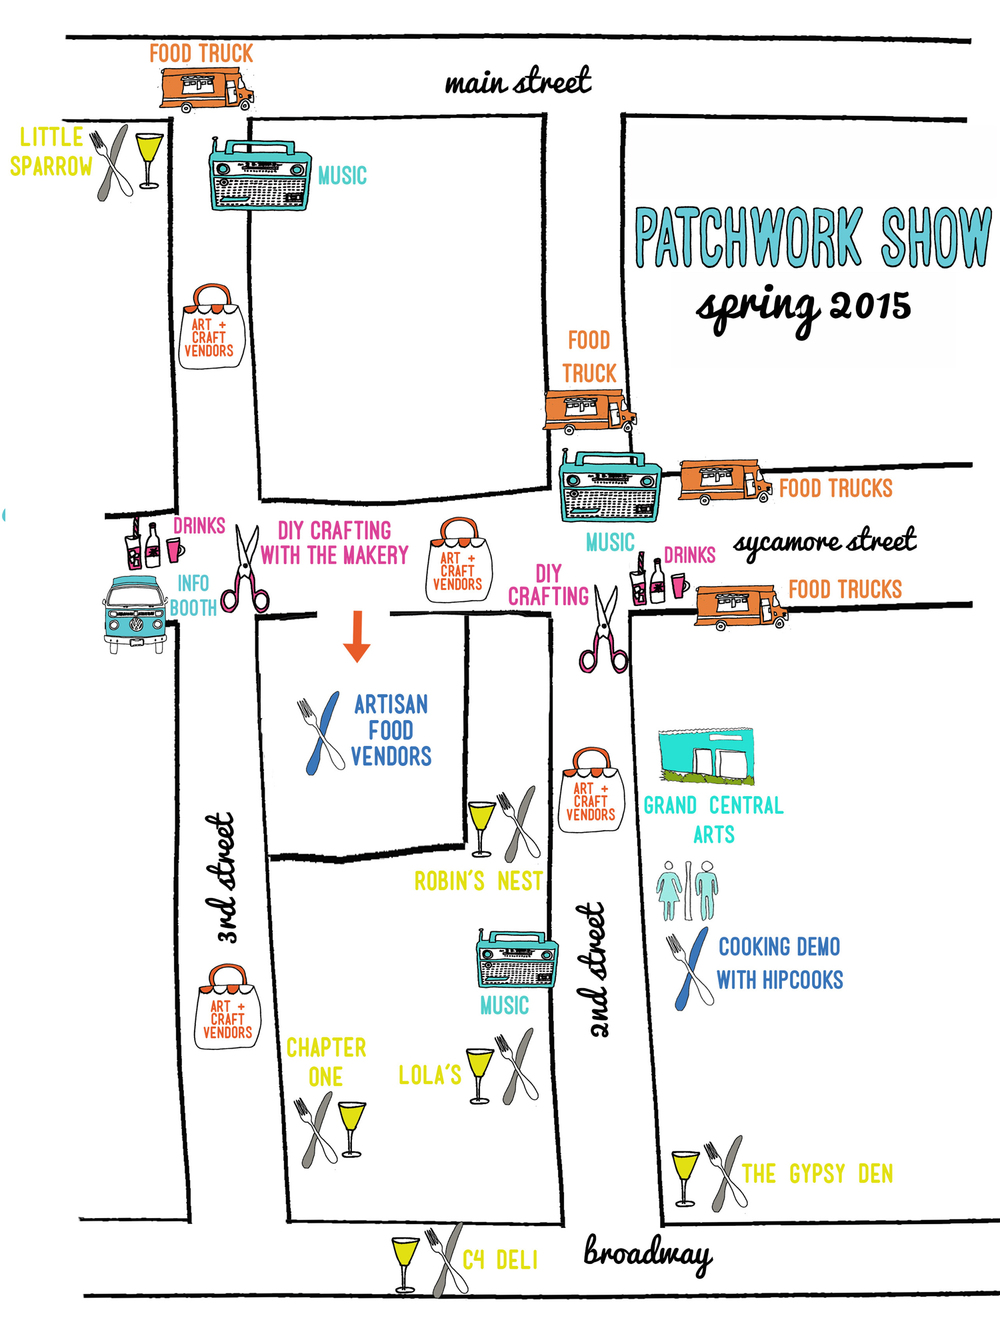 patchwork show craft fair custom illustrated design map.jpg